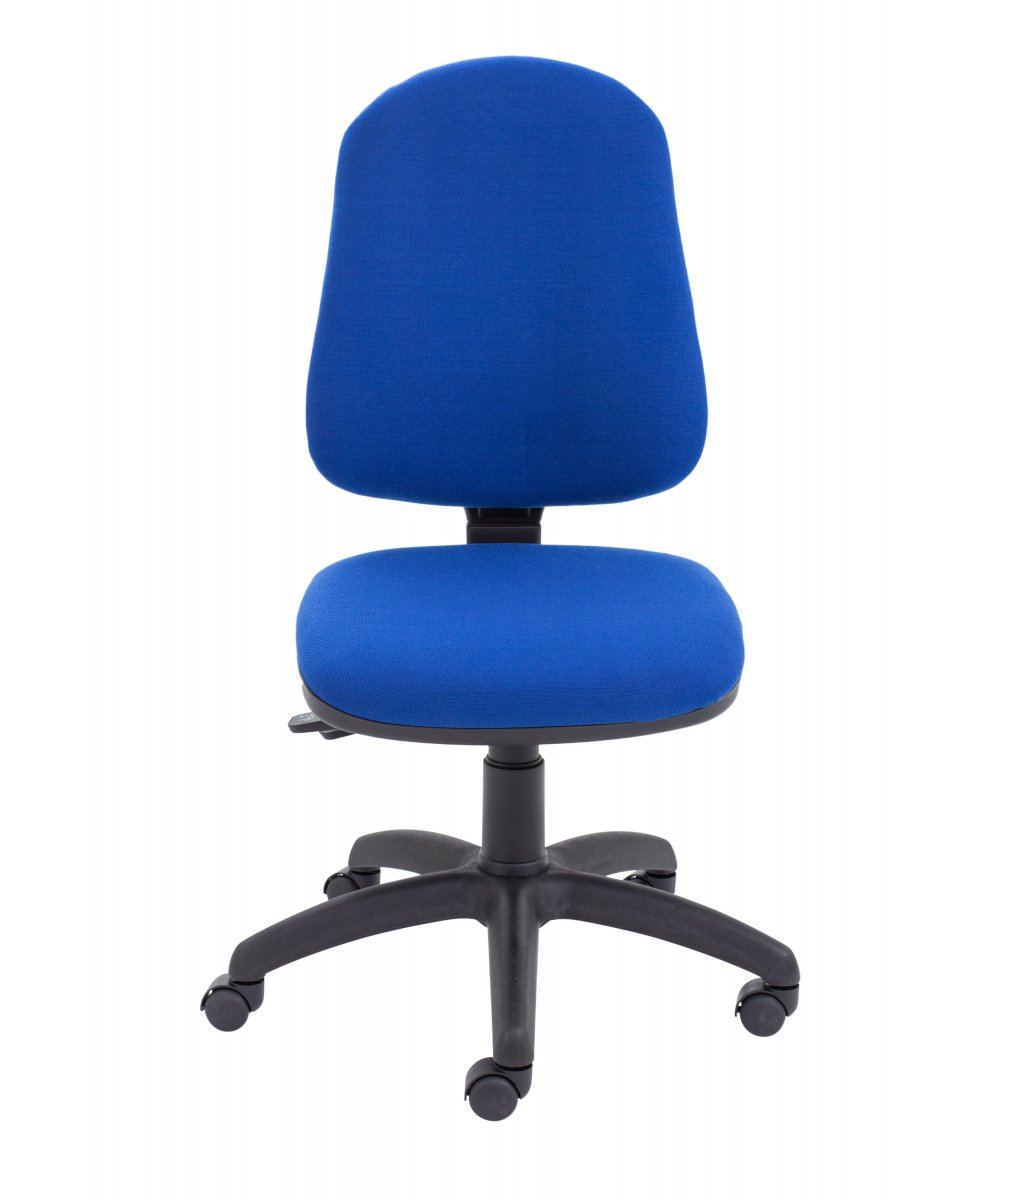 Calypso II High Back Operator Chair with Asynchro Mechanism - Royal Blue